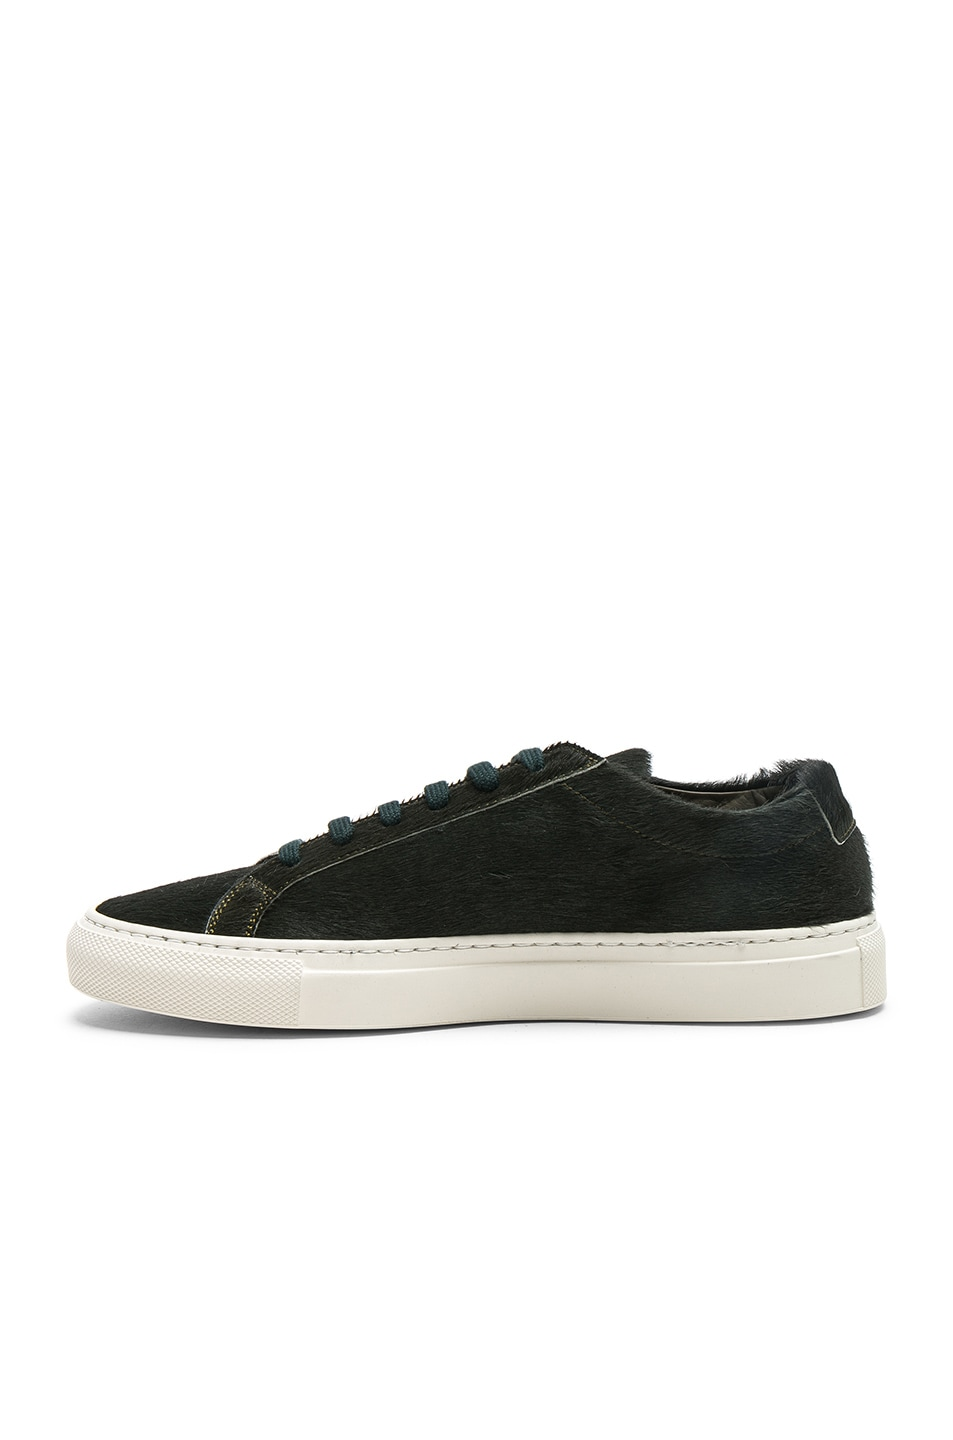 Image 5 of Common Projects Original Calf Hair Achilles Low in Green